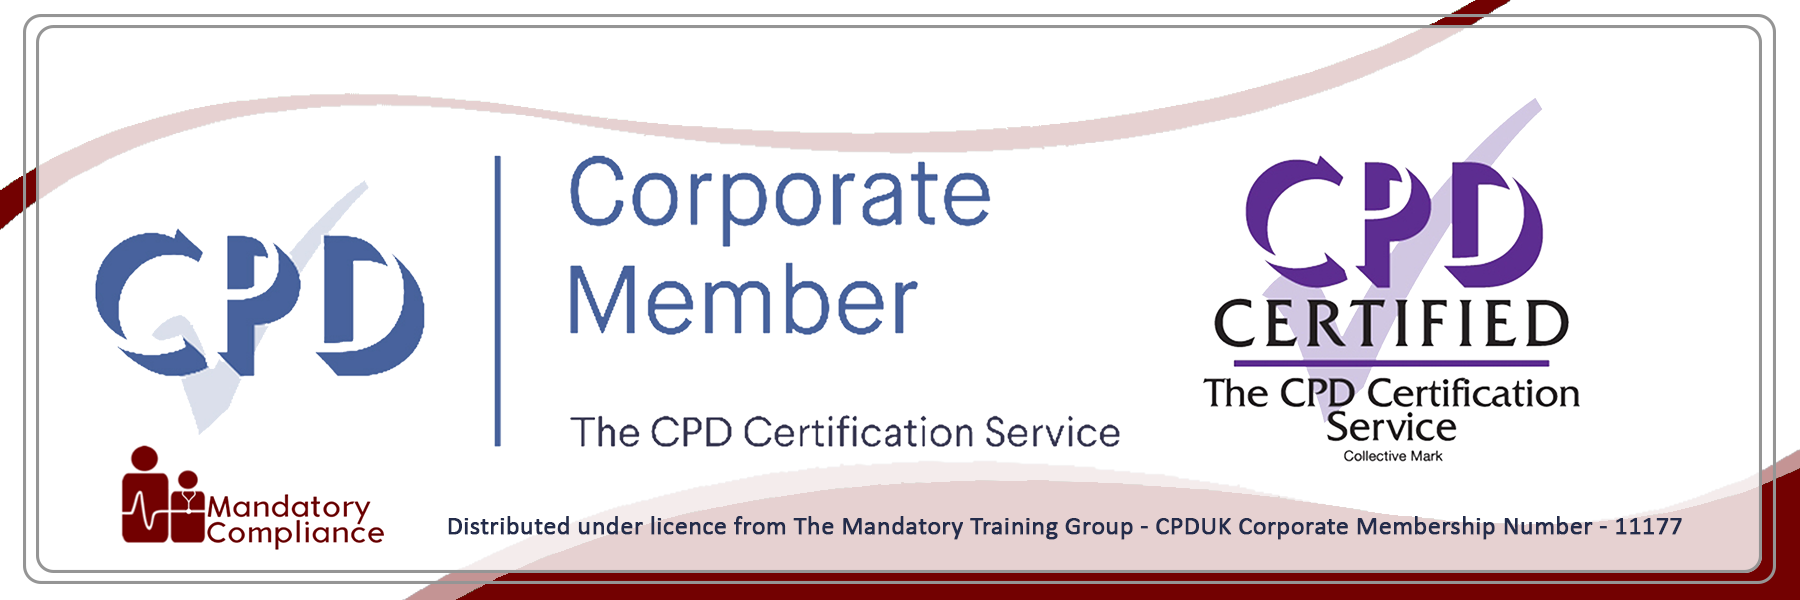 Care Certificate Standard 11 - Train the Trainer - The Mandatory Compliance UK -